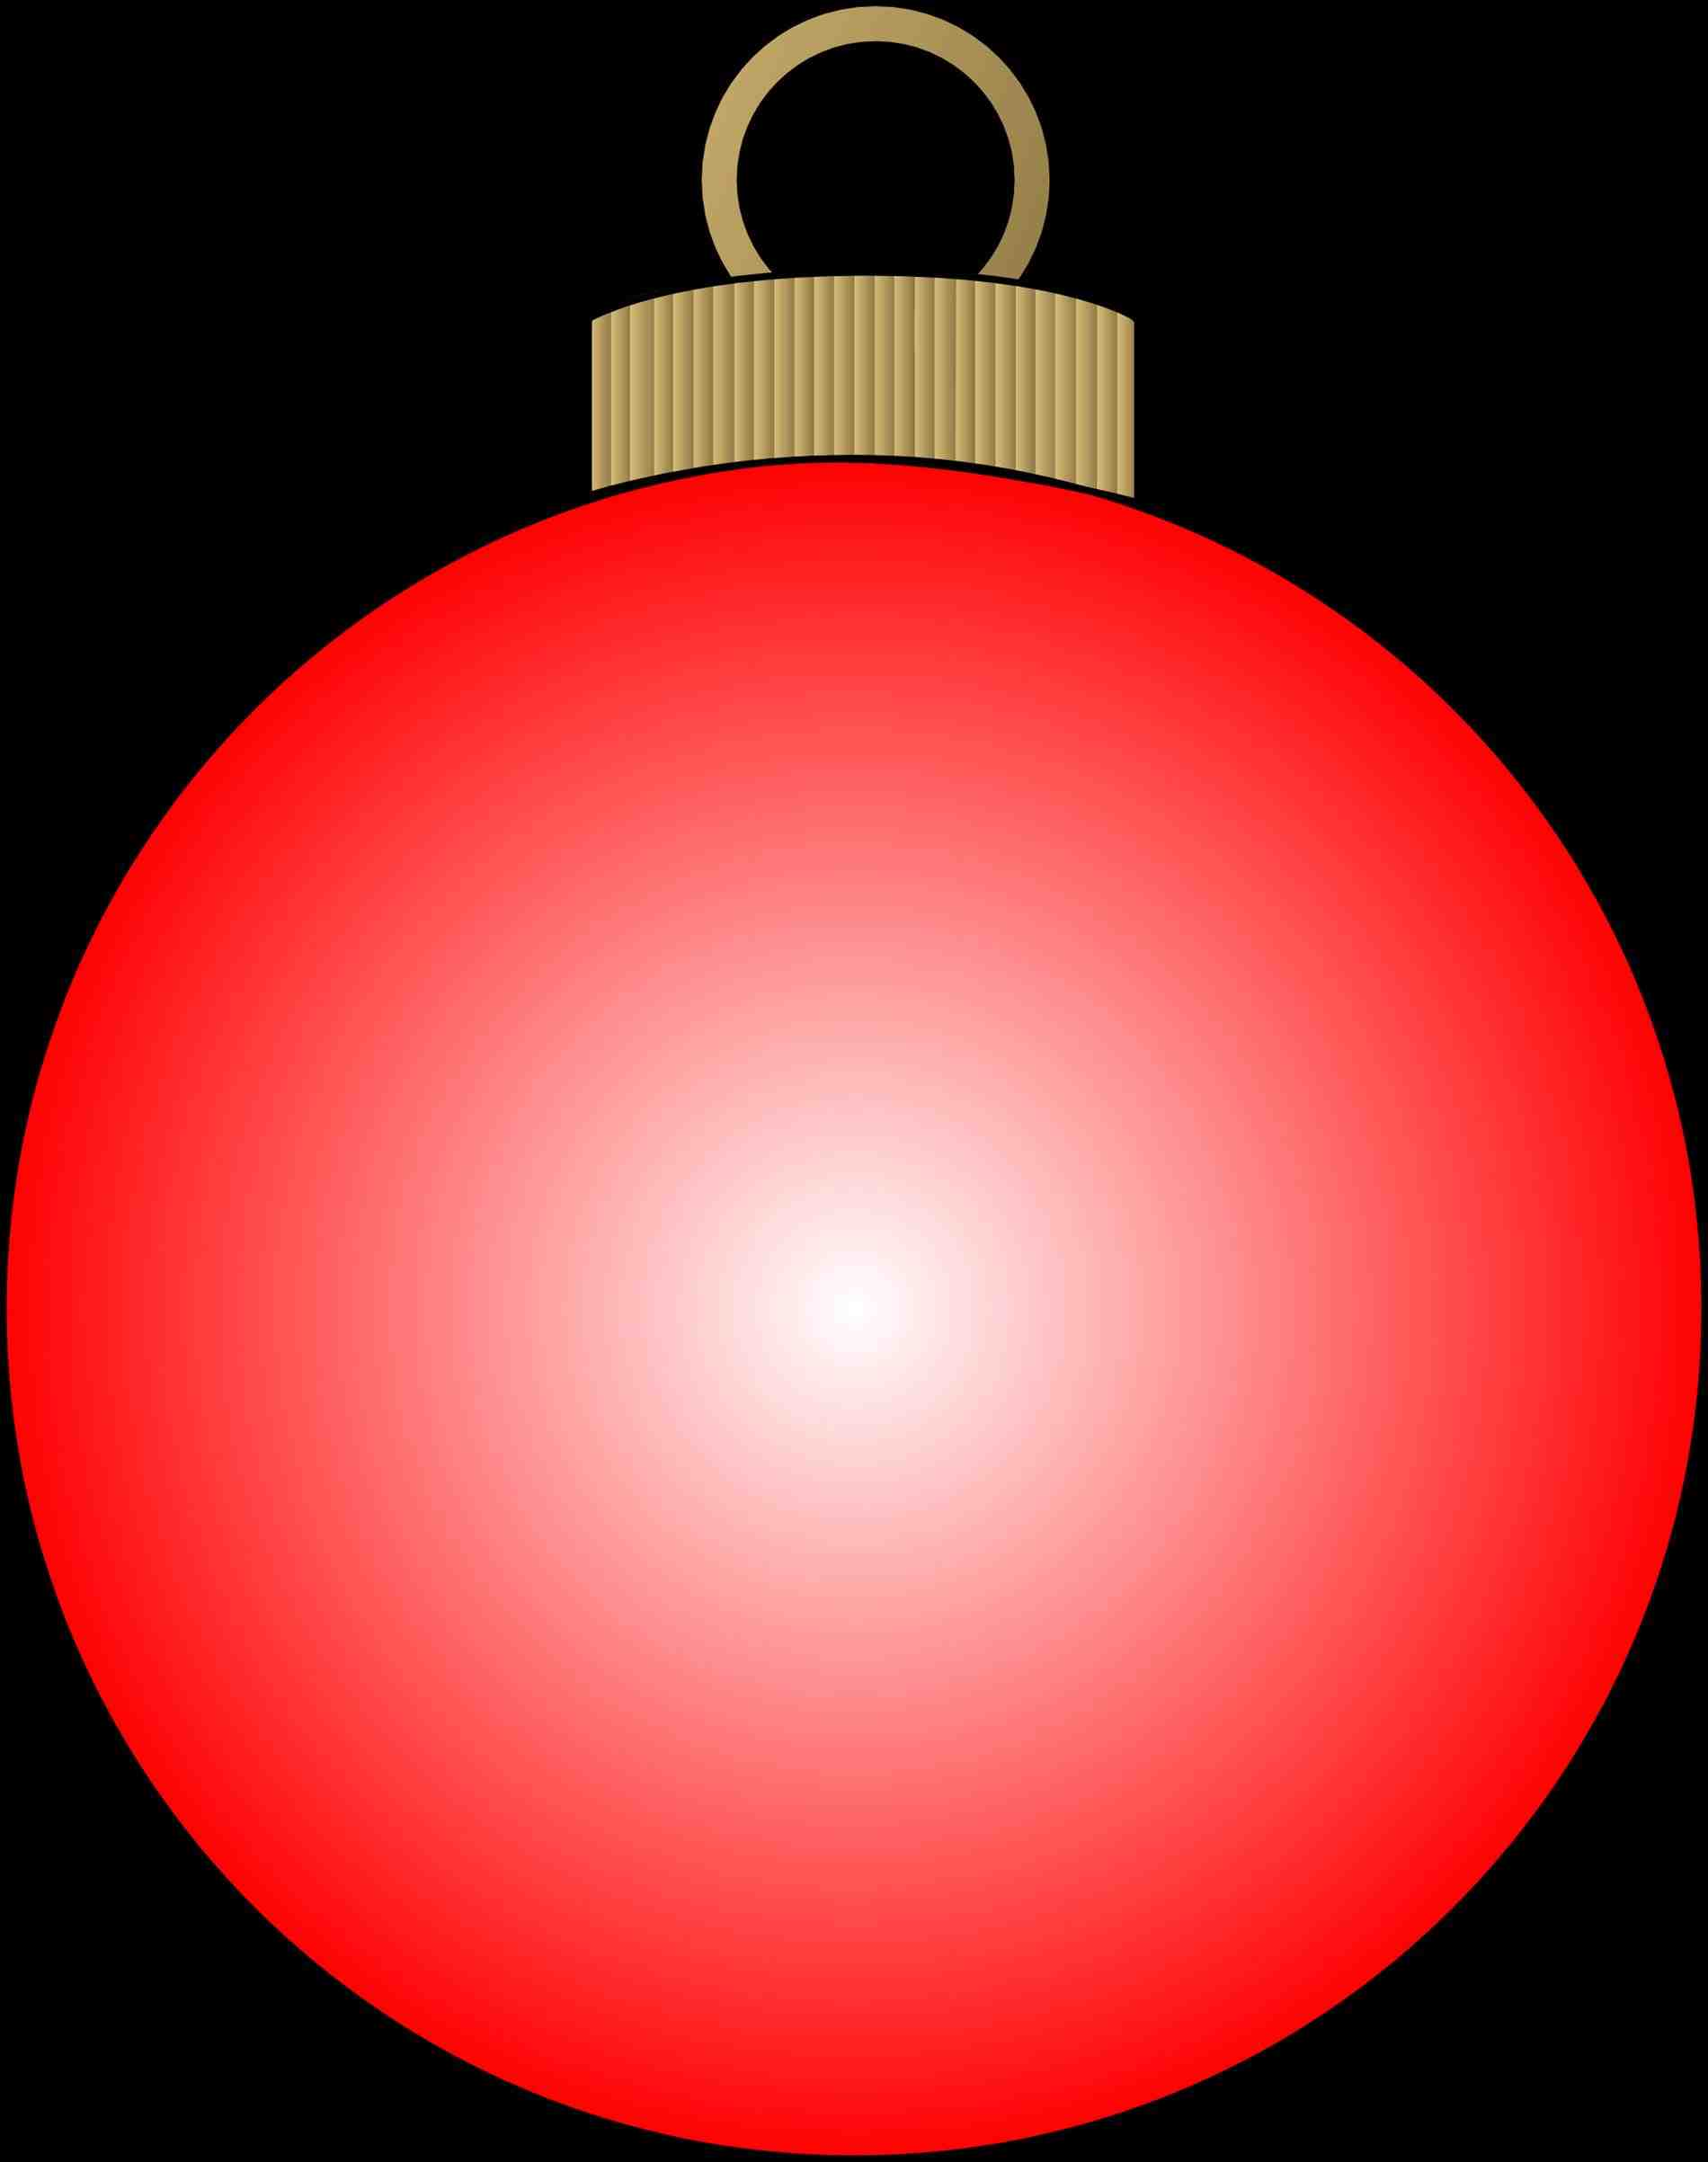 1900x2405 Christmas Bulb Clip Art cheminee.website